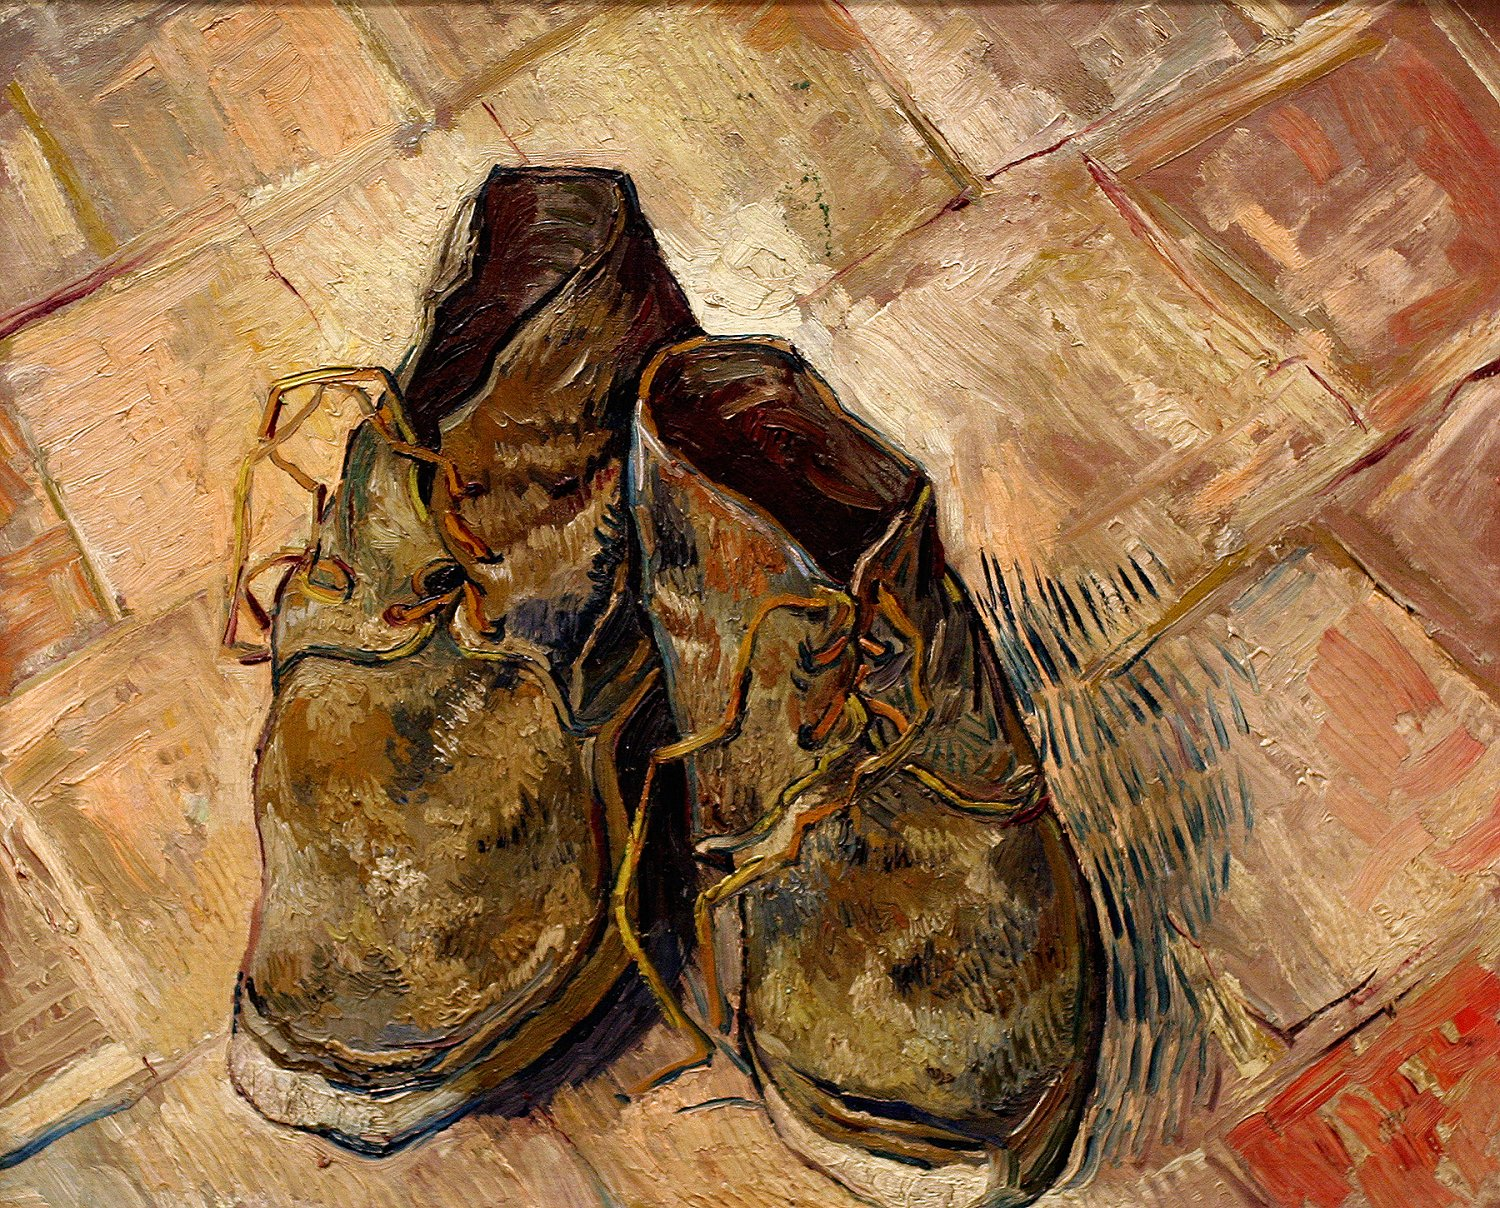 an analysis of the influence vincent van goghs mental illness on his self portraits Van gogh suffered from psychotic episodes and delusions and though he worried about his mental  his most renowned self-portraits  illness of vincent van.